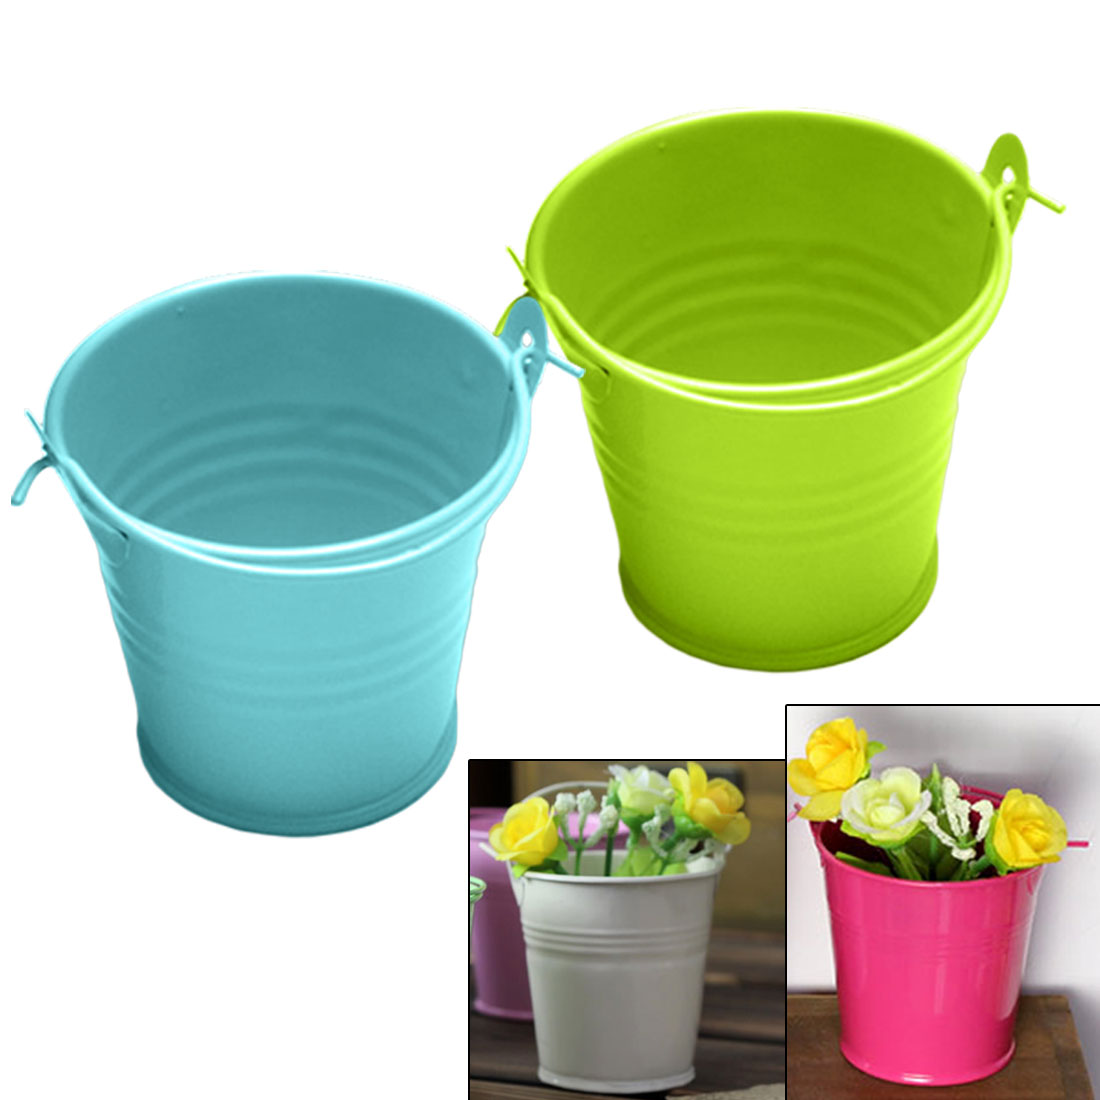 Mini Flower Metal Hanging Pots Garden Balcony Succulent Plant Flowerpot Home Office Decor Iron Bucket With Handle